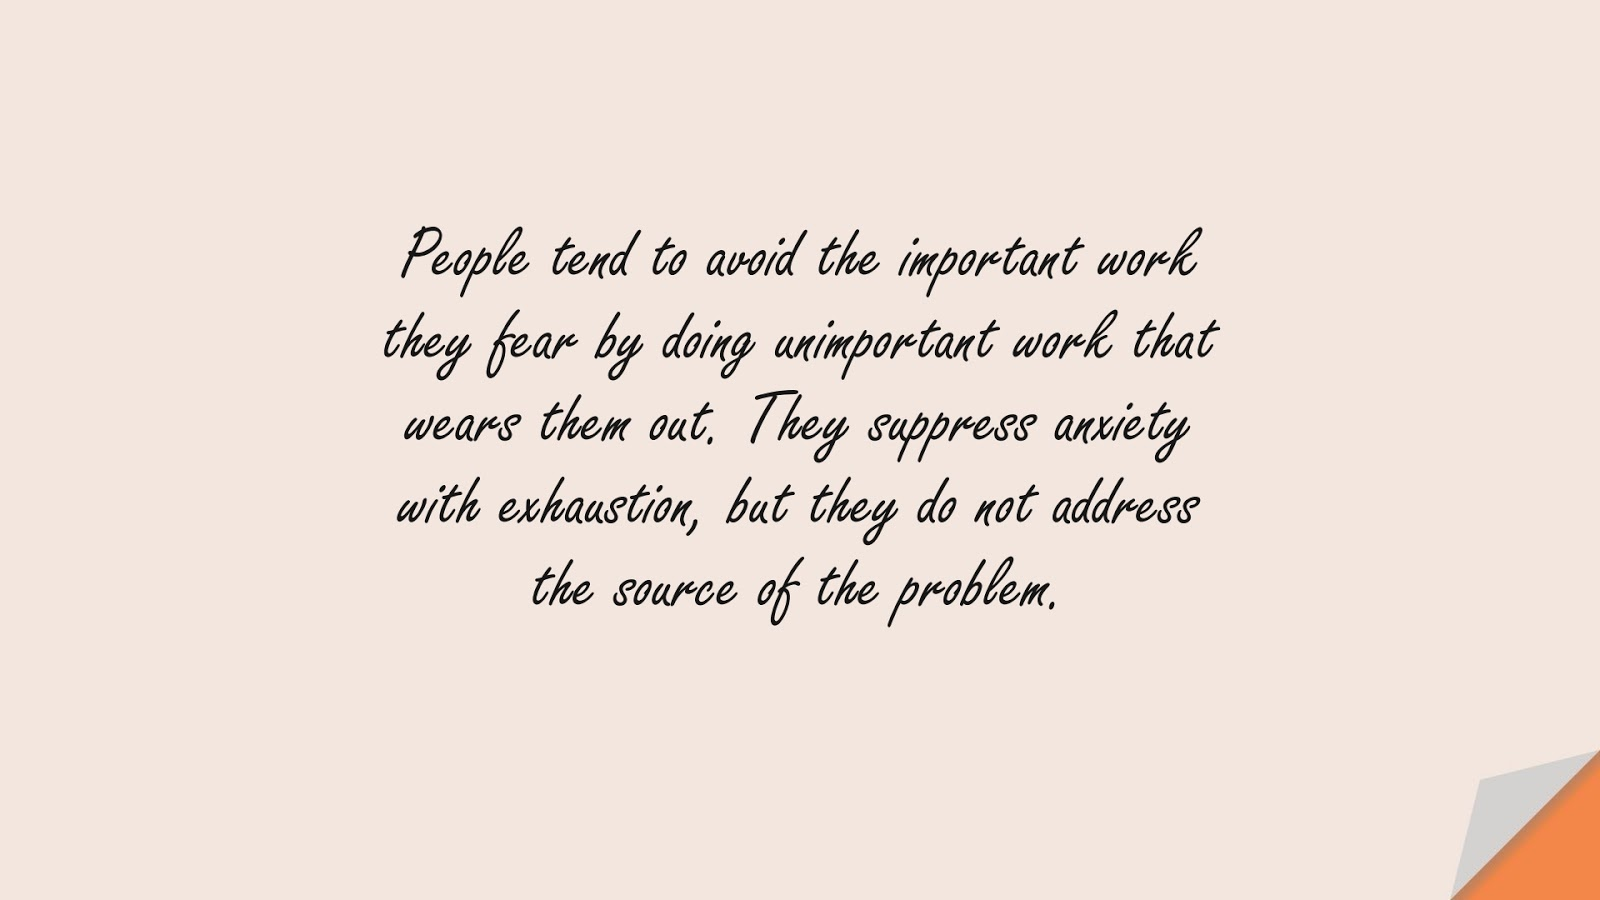 People tend to avoid the important work they fear by doing unimportant work that wears them out. They suppress anxiety with exhaustion, but they do not address the source of the problem.FALSE